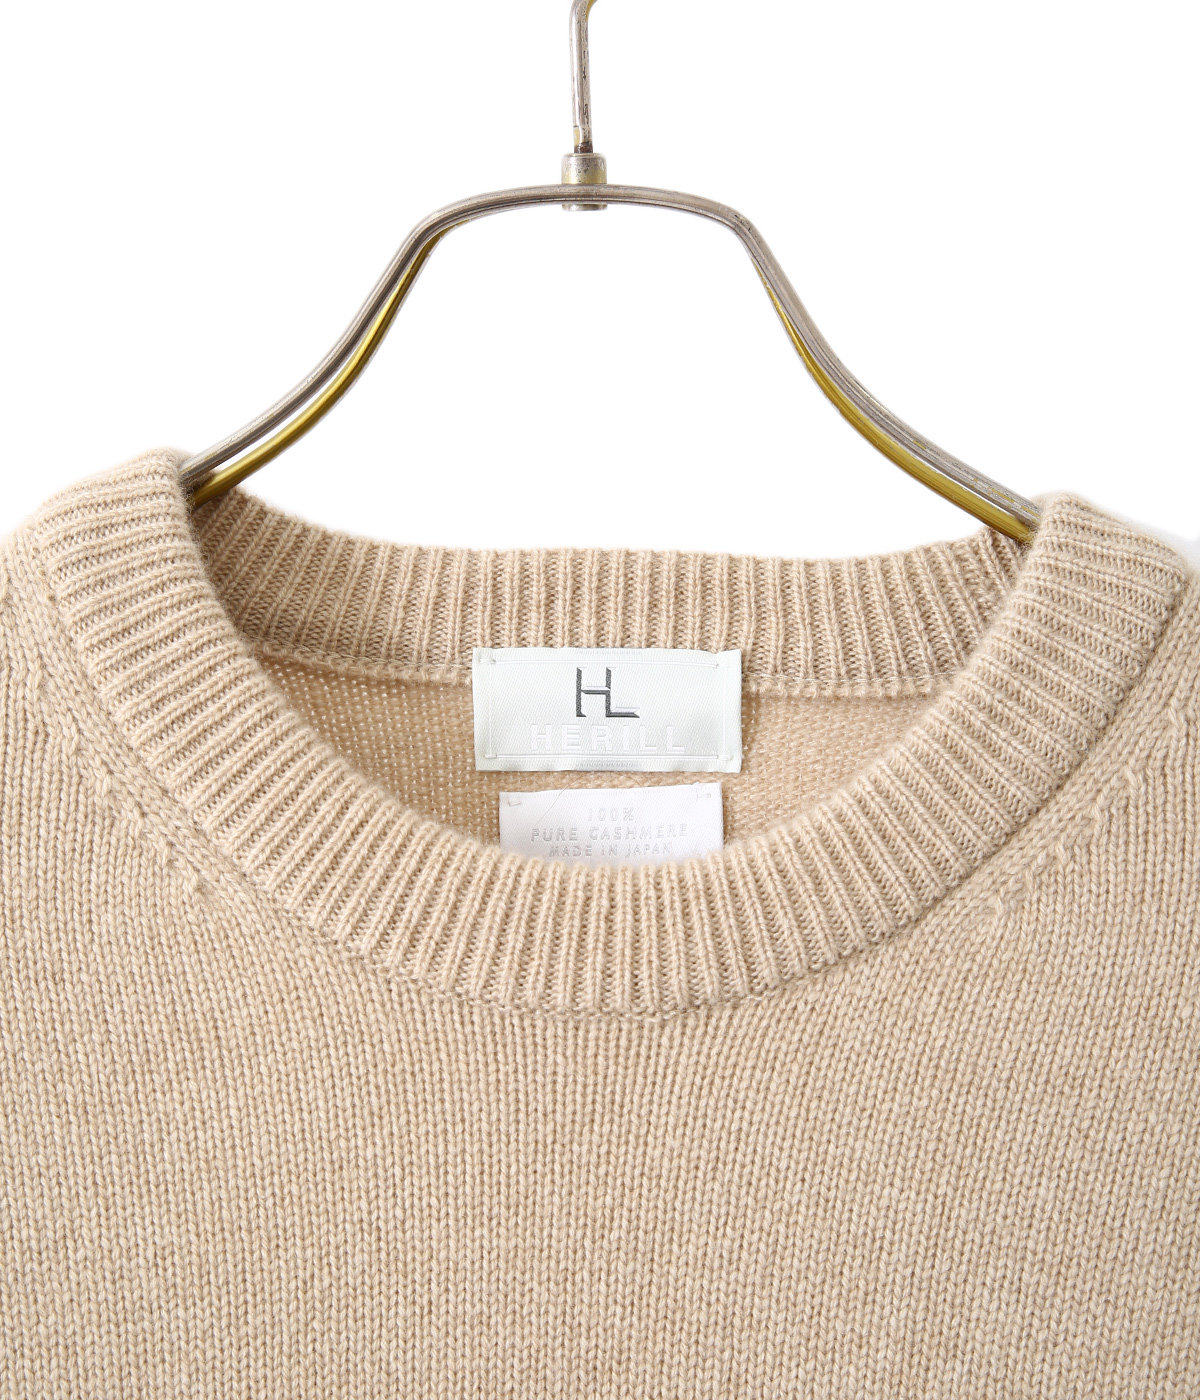 Golden cash cashmere crew knit